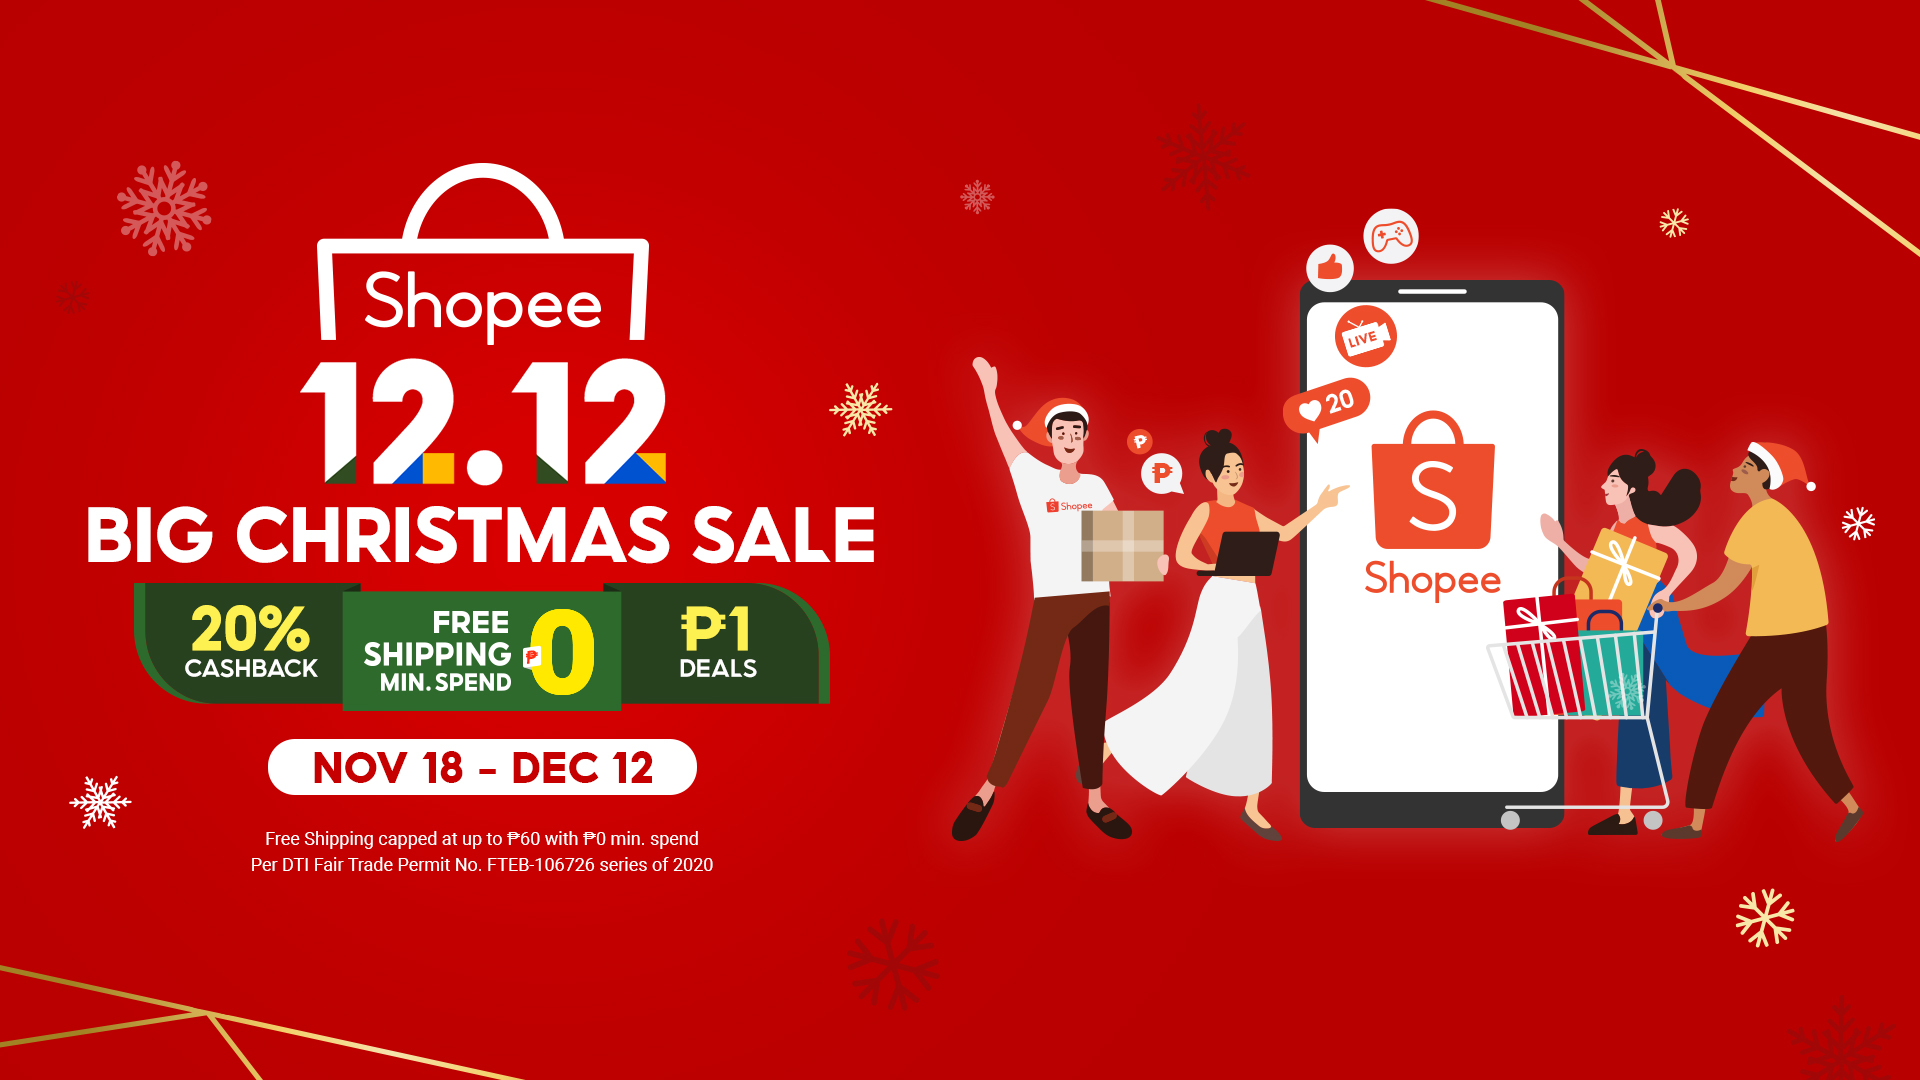 Shopee launches 12.12 Big Christmas Sale, celebrates 5 Years of Digital Acceleration in the region